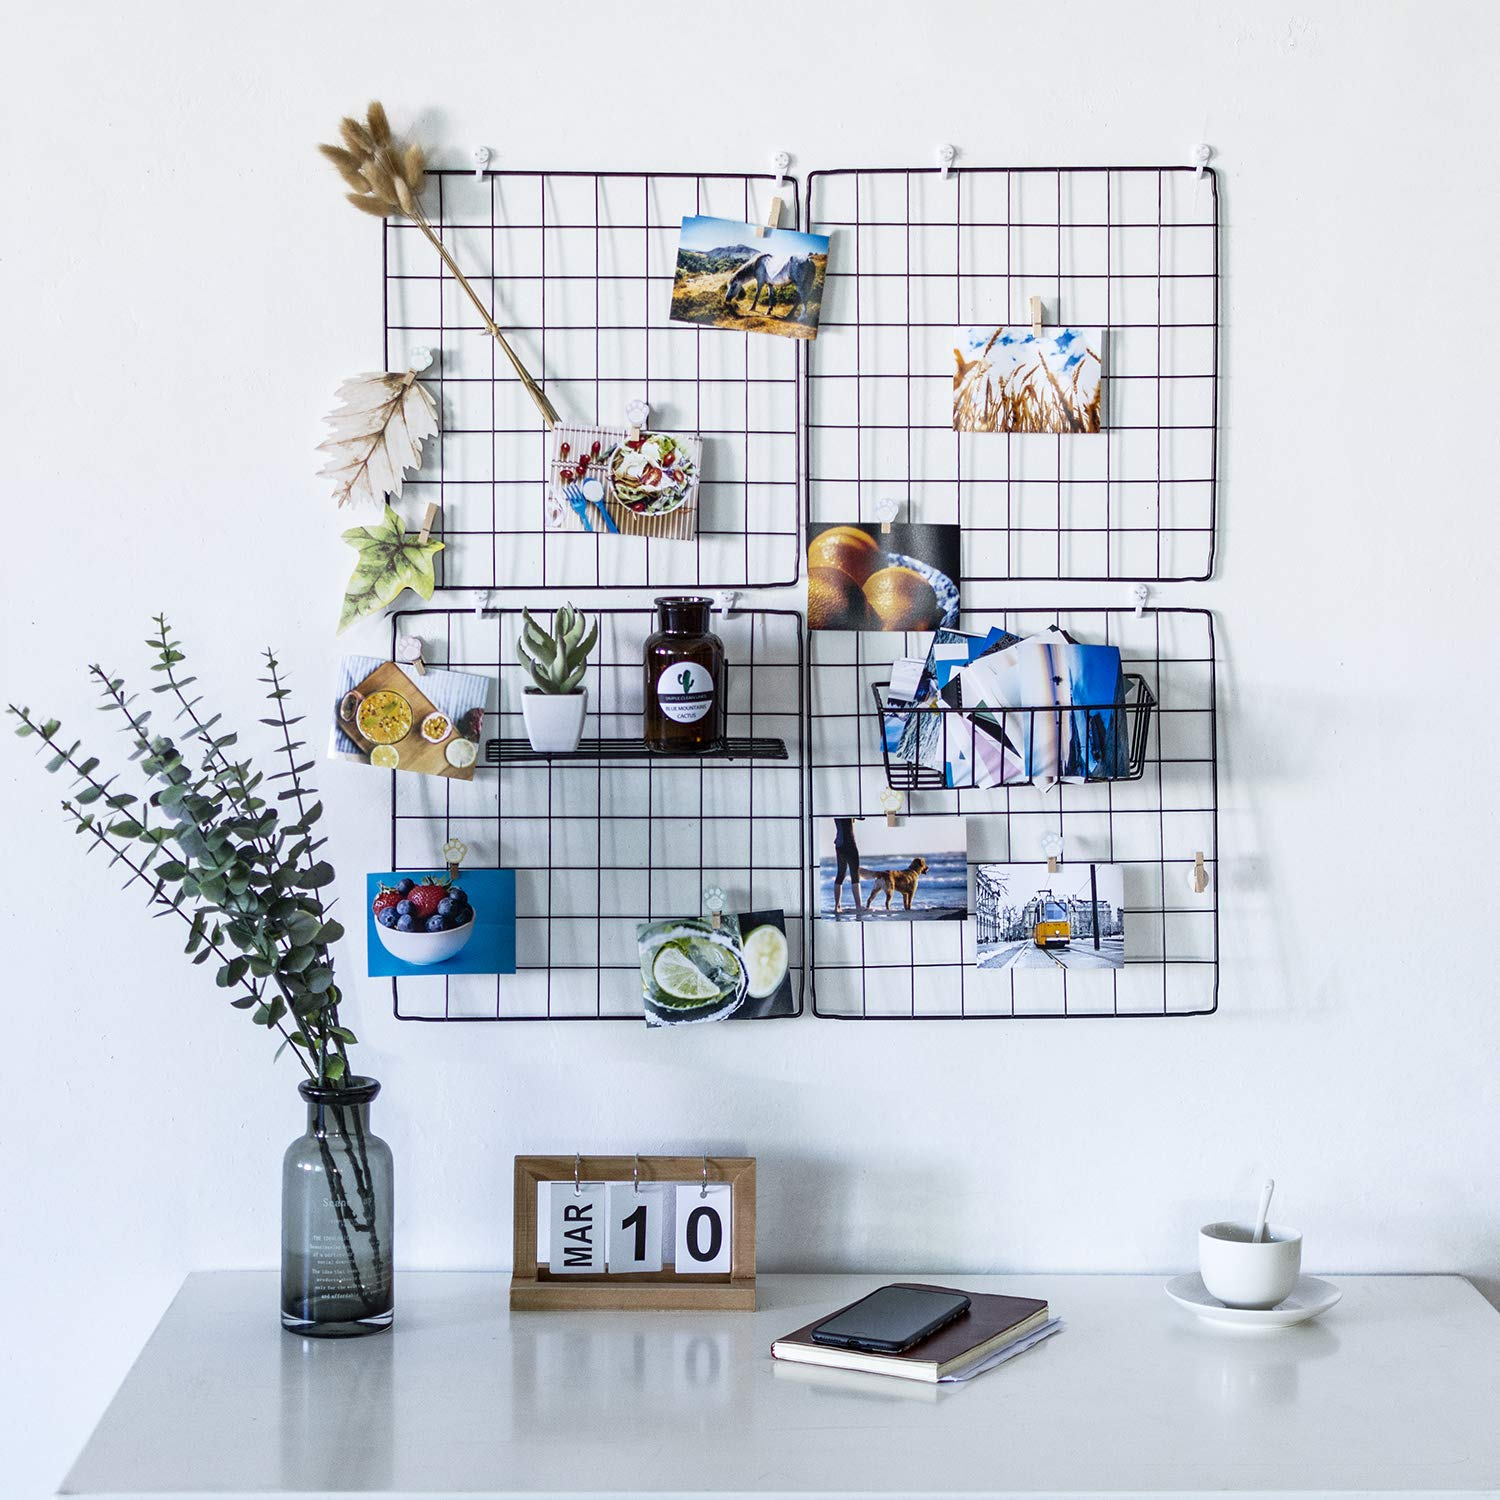 DS Grid Photo Wall Wire Grid Panel Picture Display Iron Decorative Rack Photograph Wall ,Ins Display Photo Wall, 14x14 Inches Set of 4 (Black)